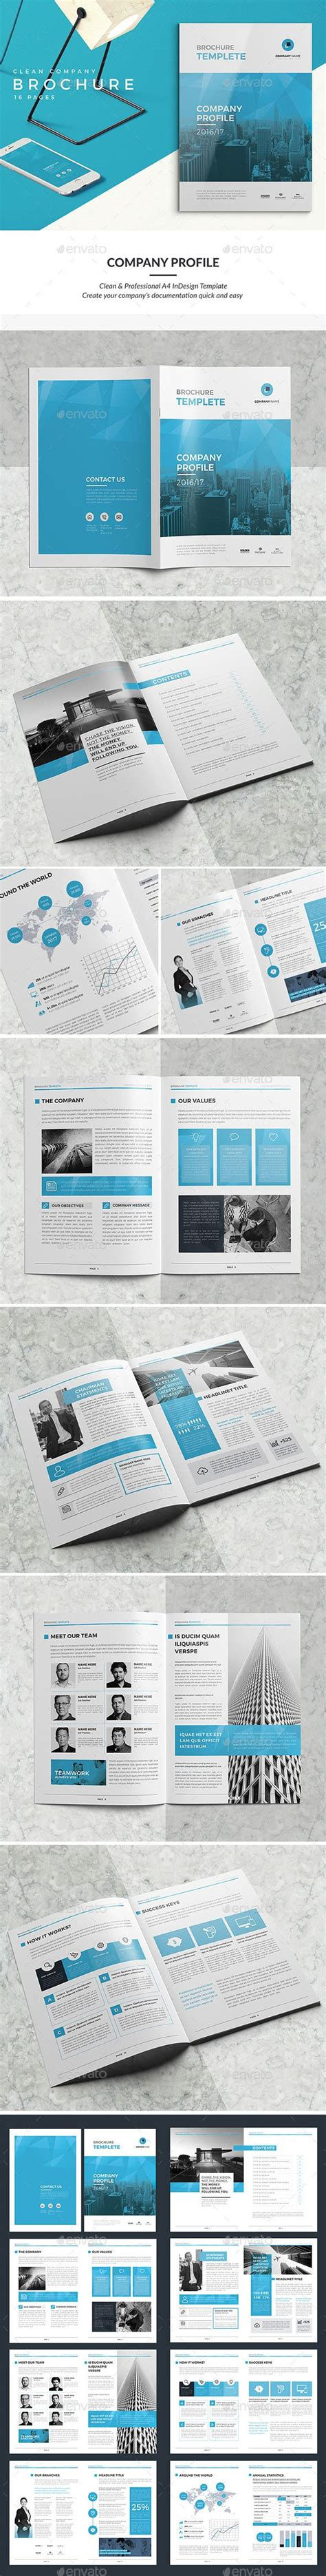 1000 ideas about brochure layout on pinterest brochure